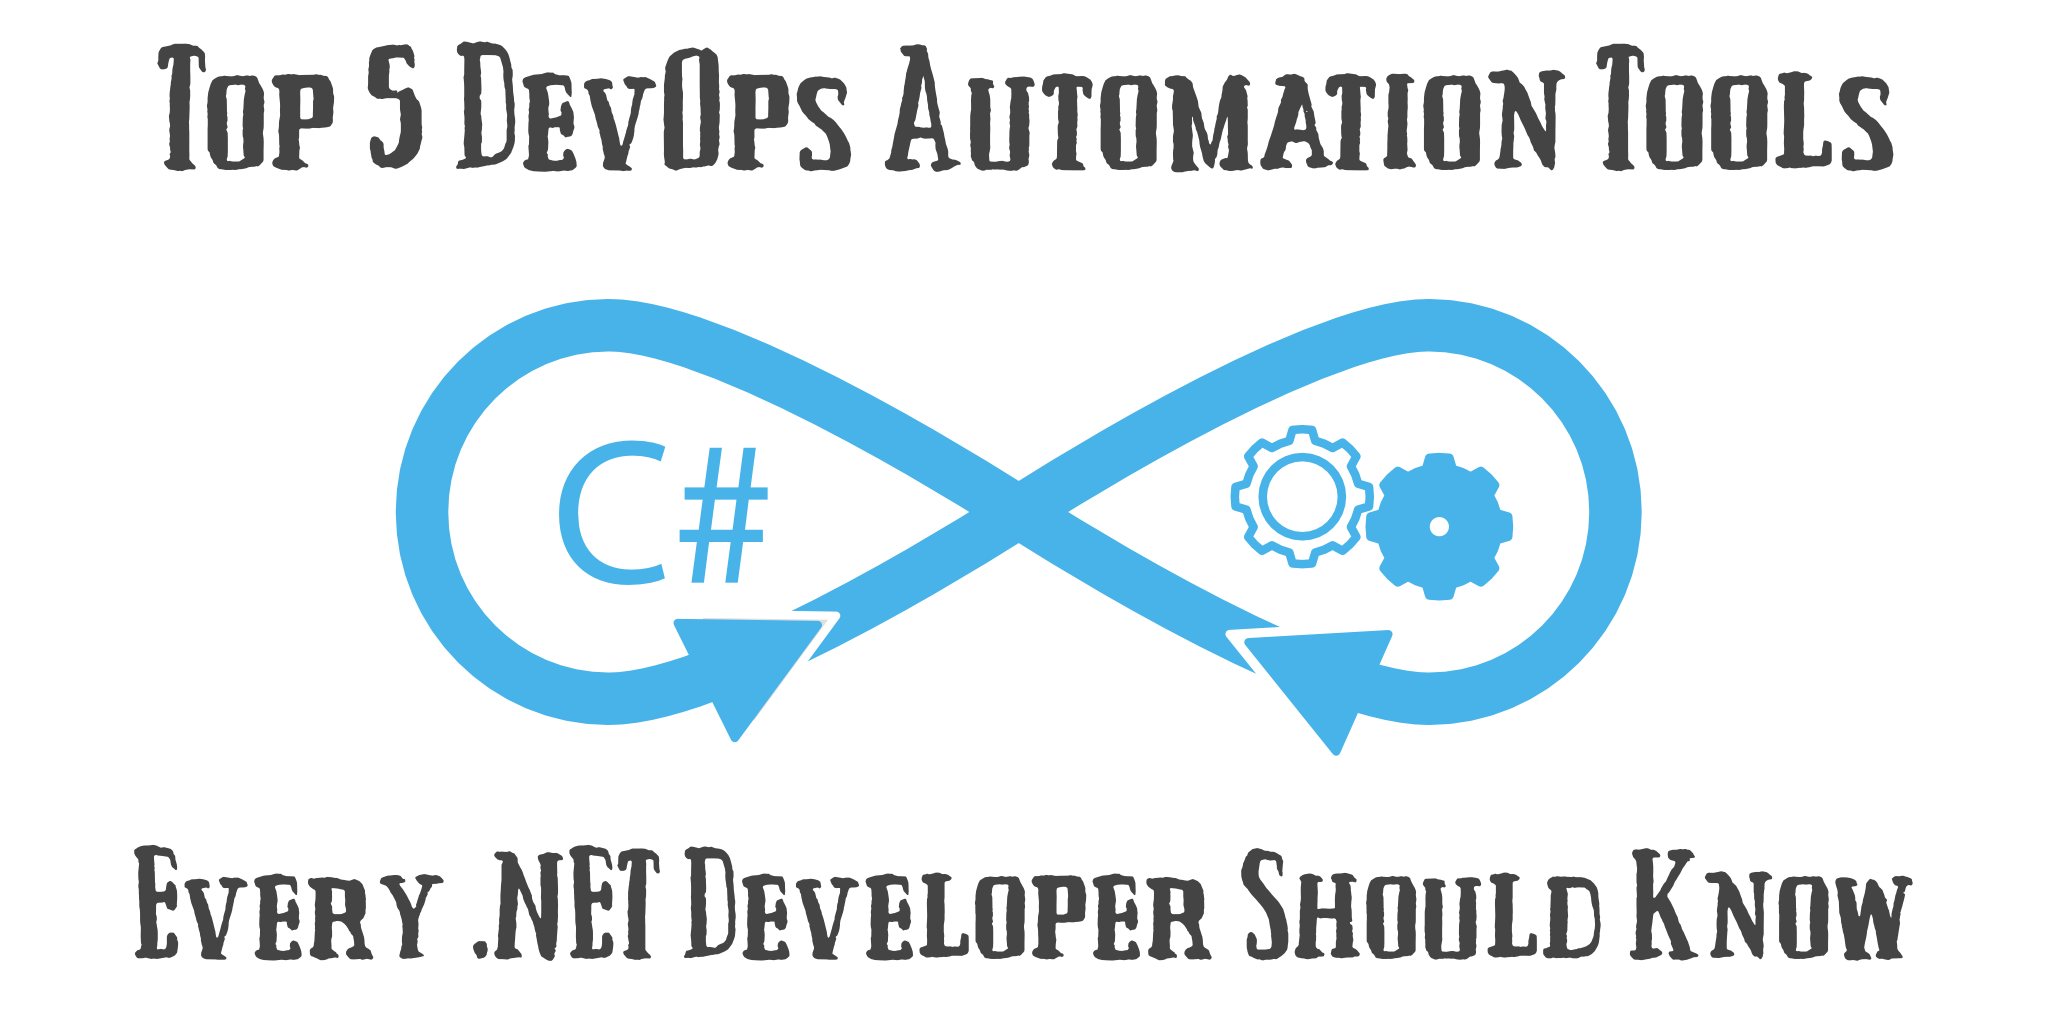 The Top 5 DevOps Automation Tools .NET Developers Should Know